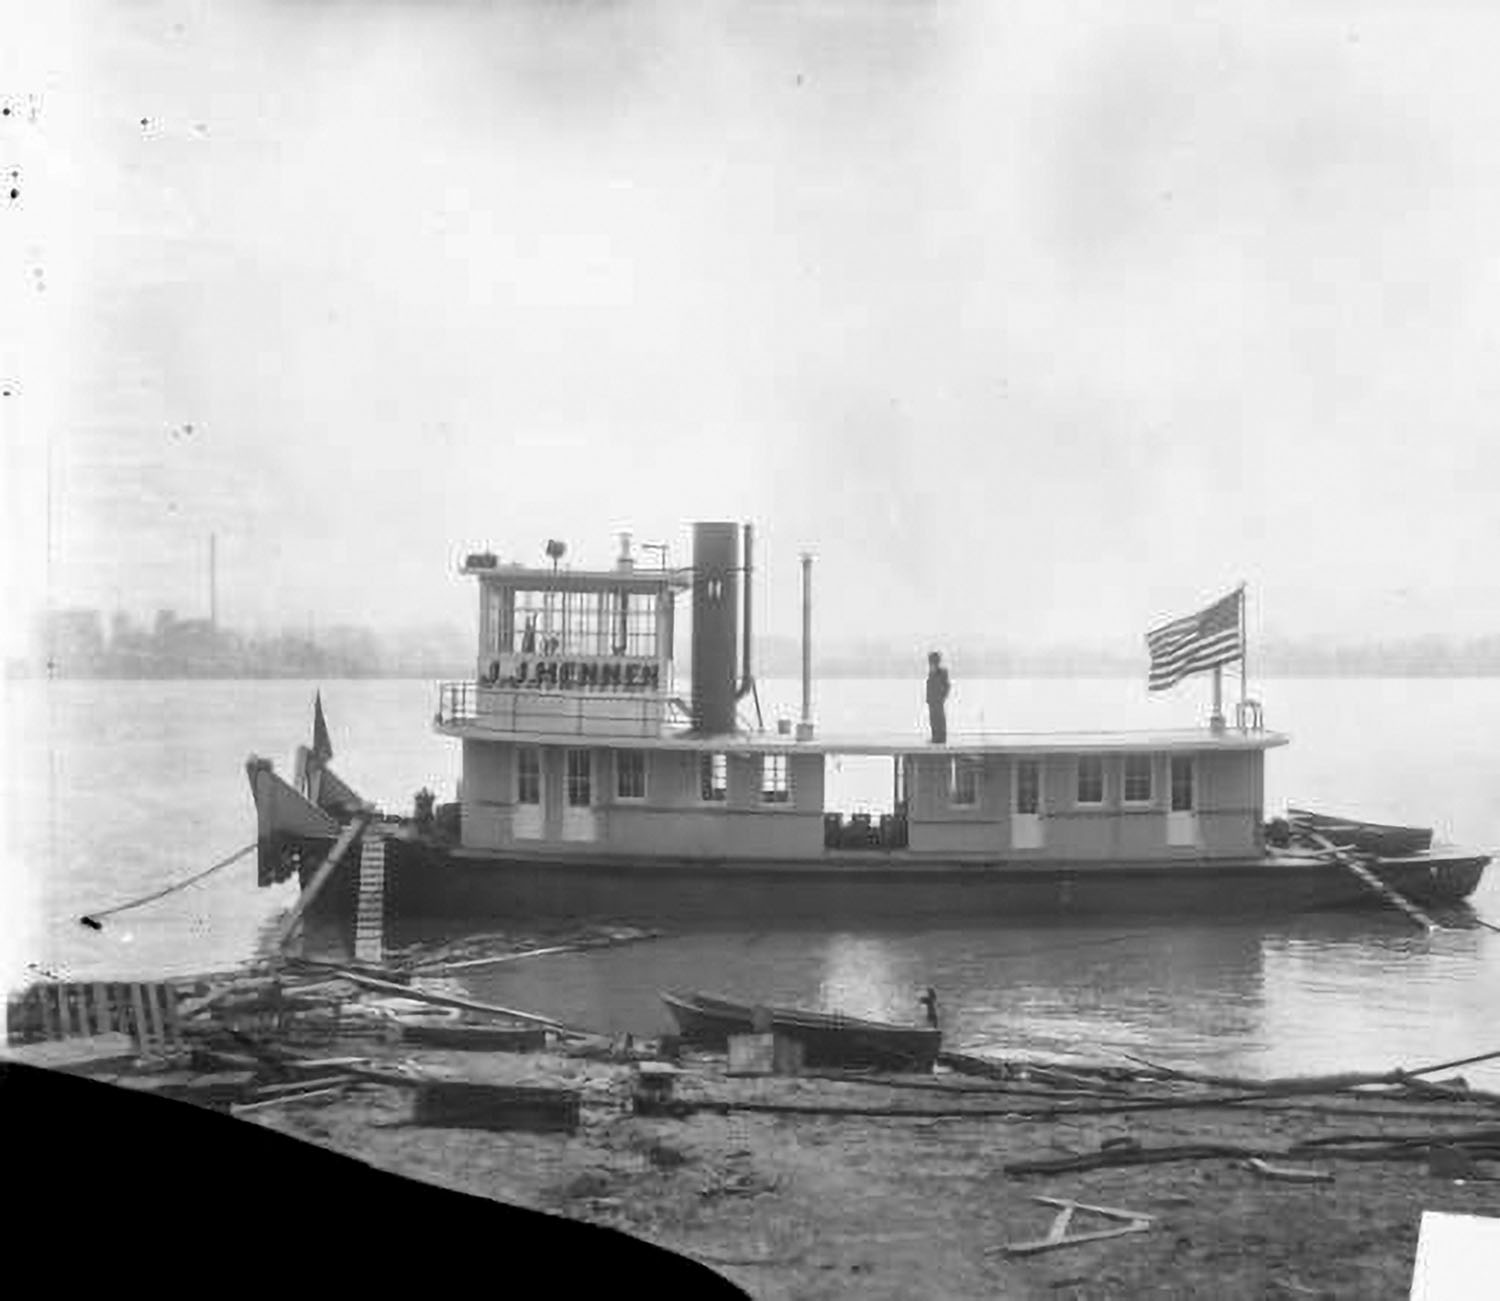 1928 Towboat From Howard Pioneered Flanking Rudders